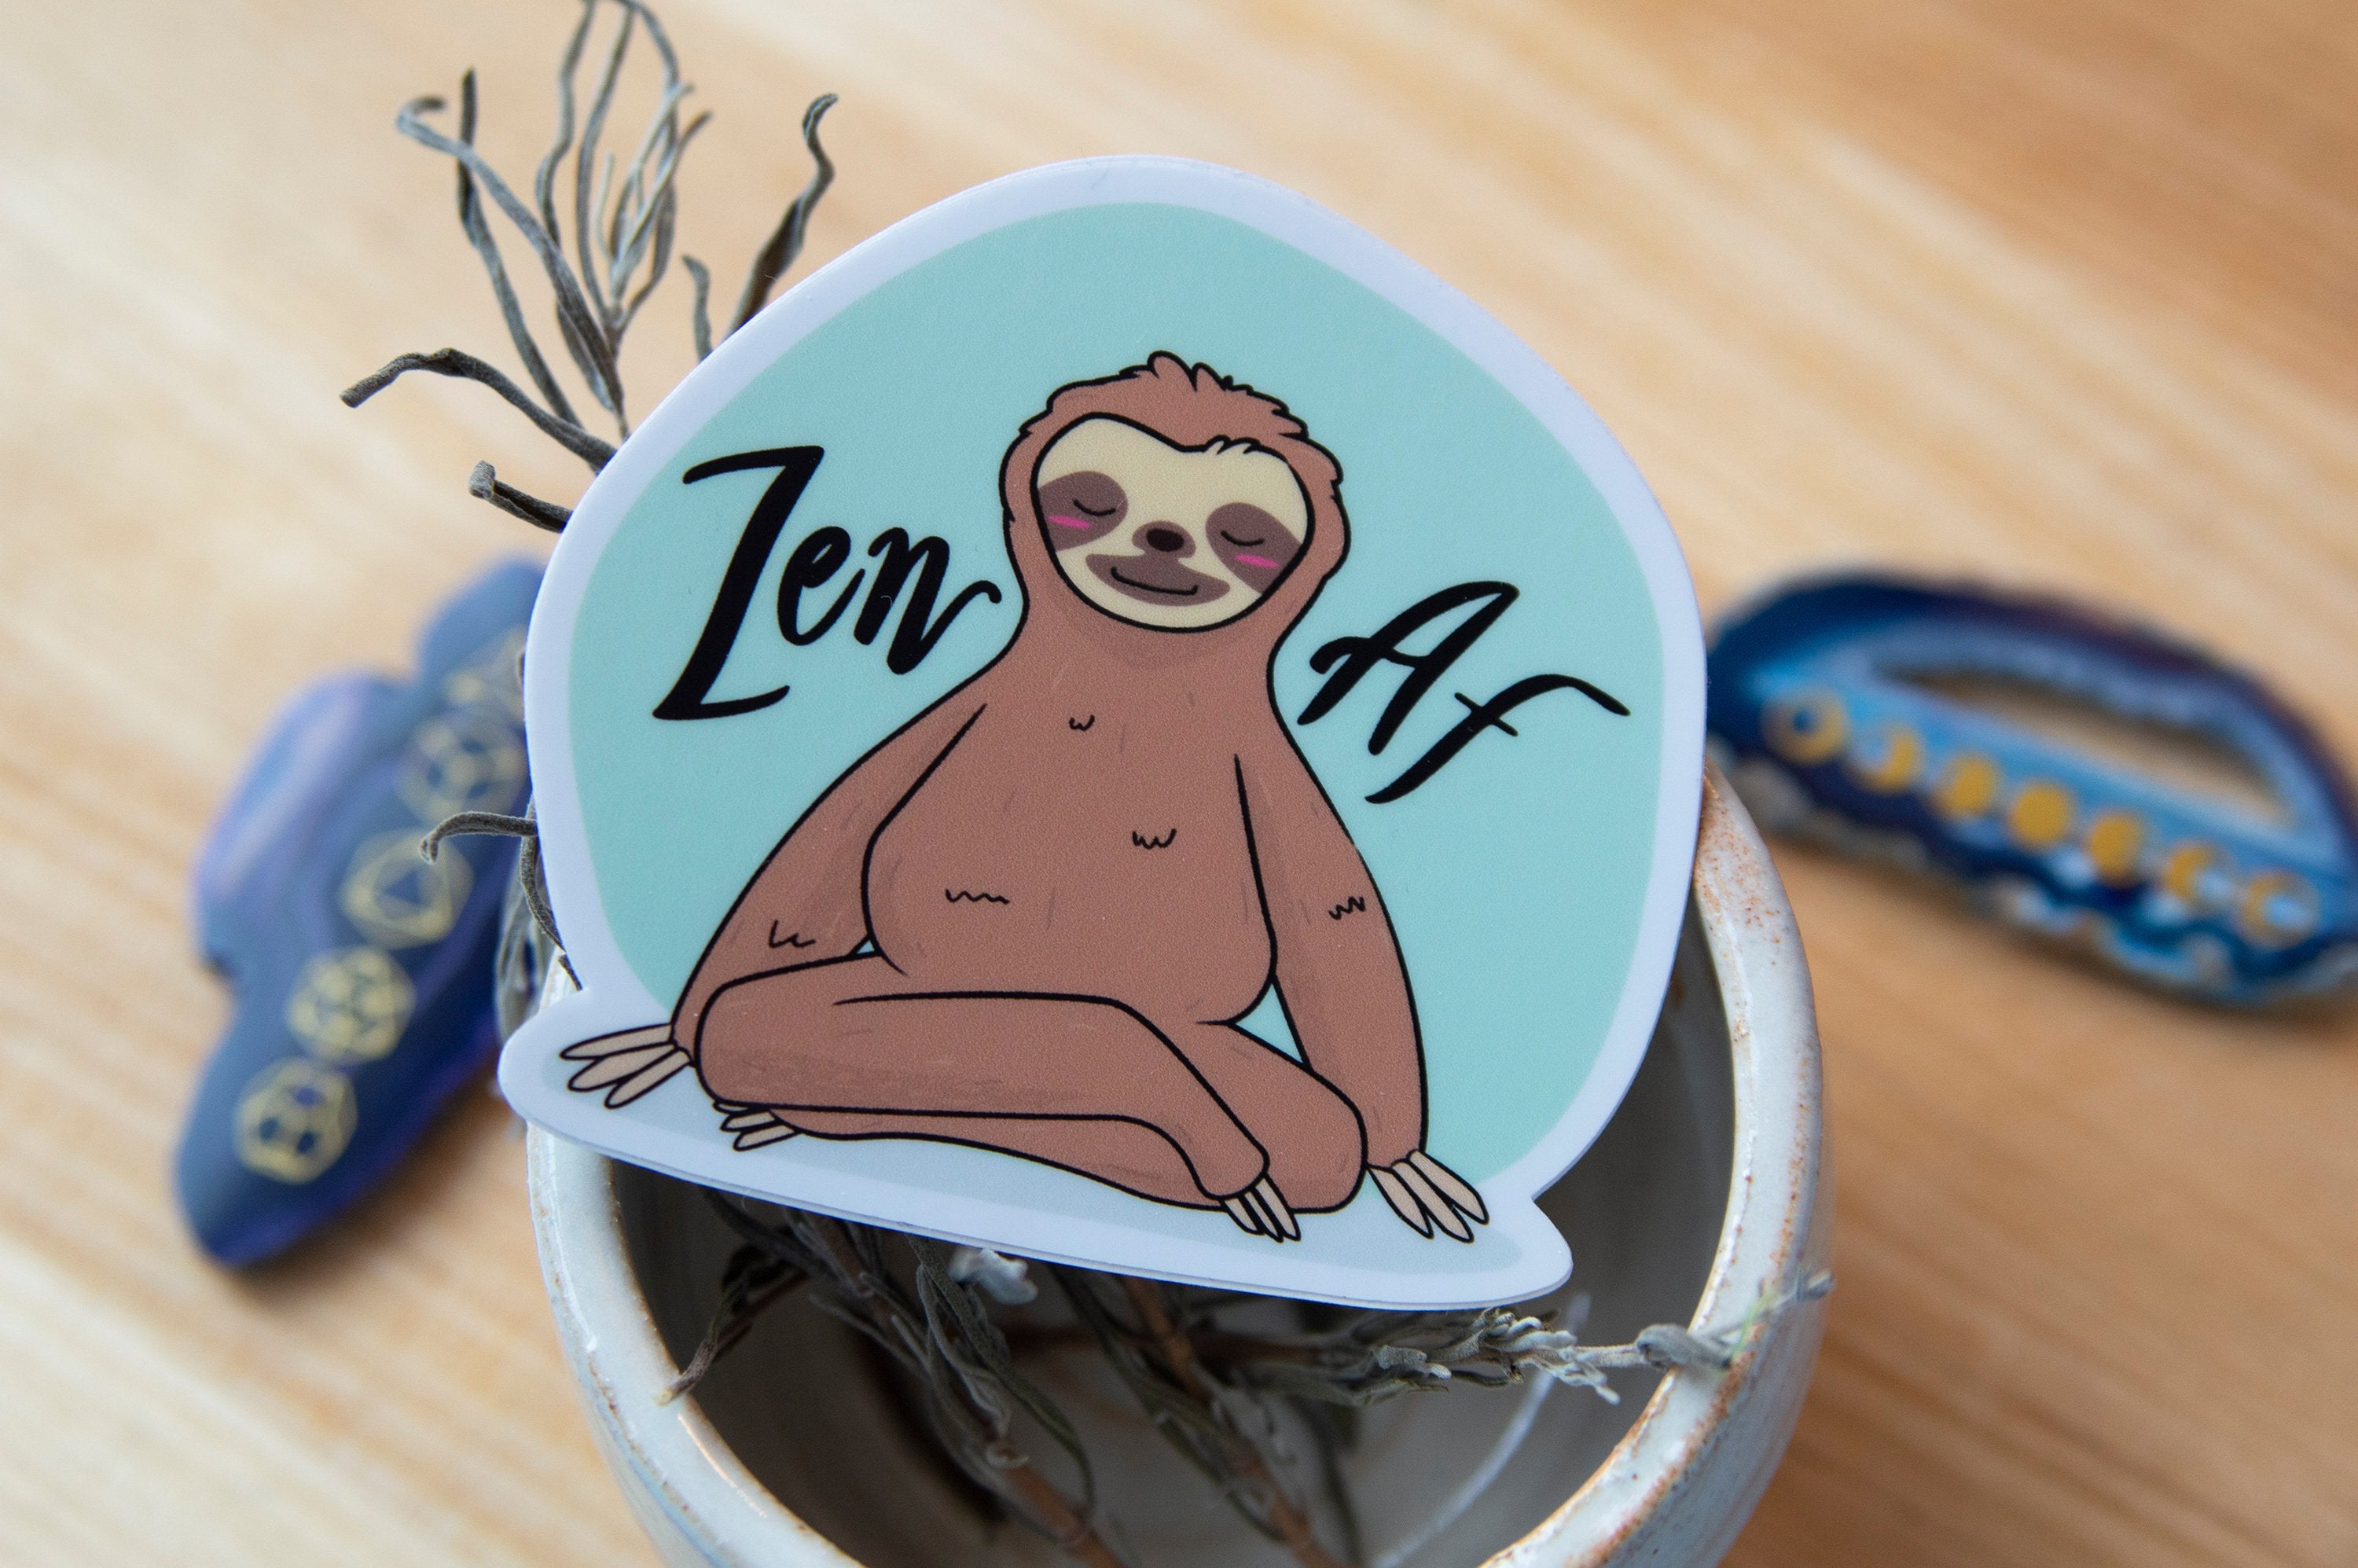 Zen AF Sloth Sticker - Hand Drawn - Yoga Vinyl Stickers, mint, sea foam green, sloths, animals doing yoga, cute kawaii